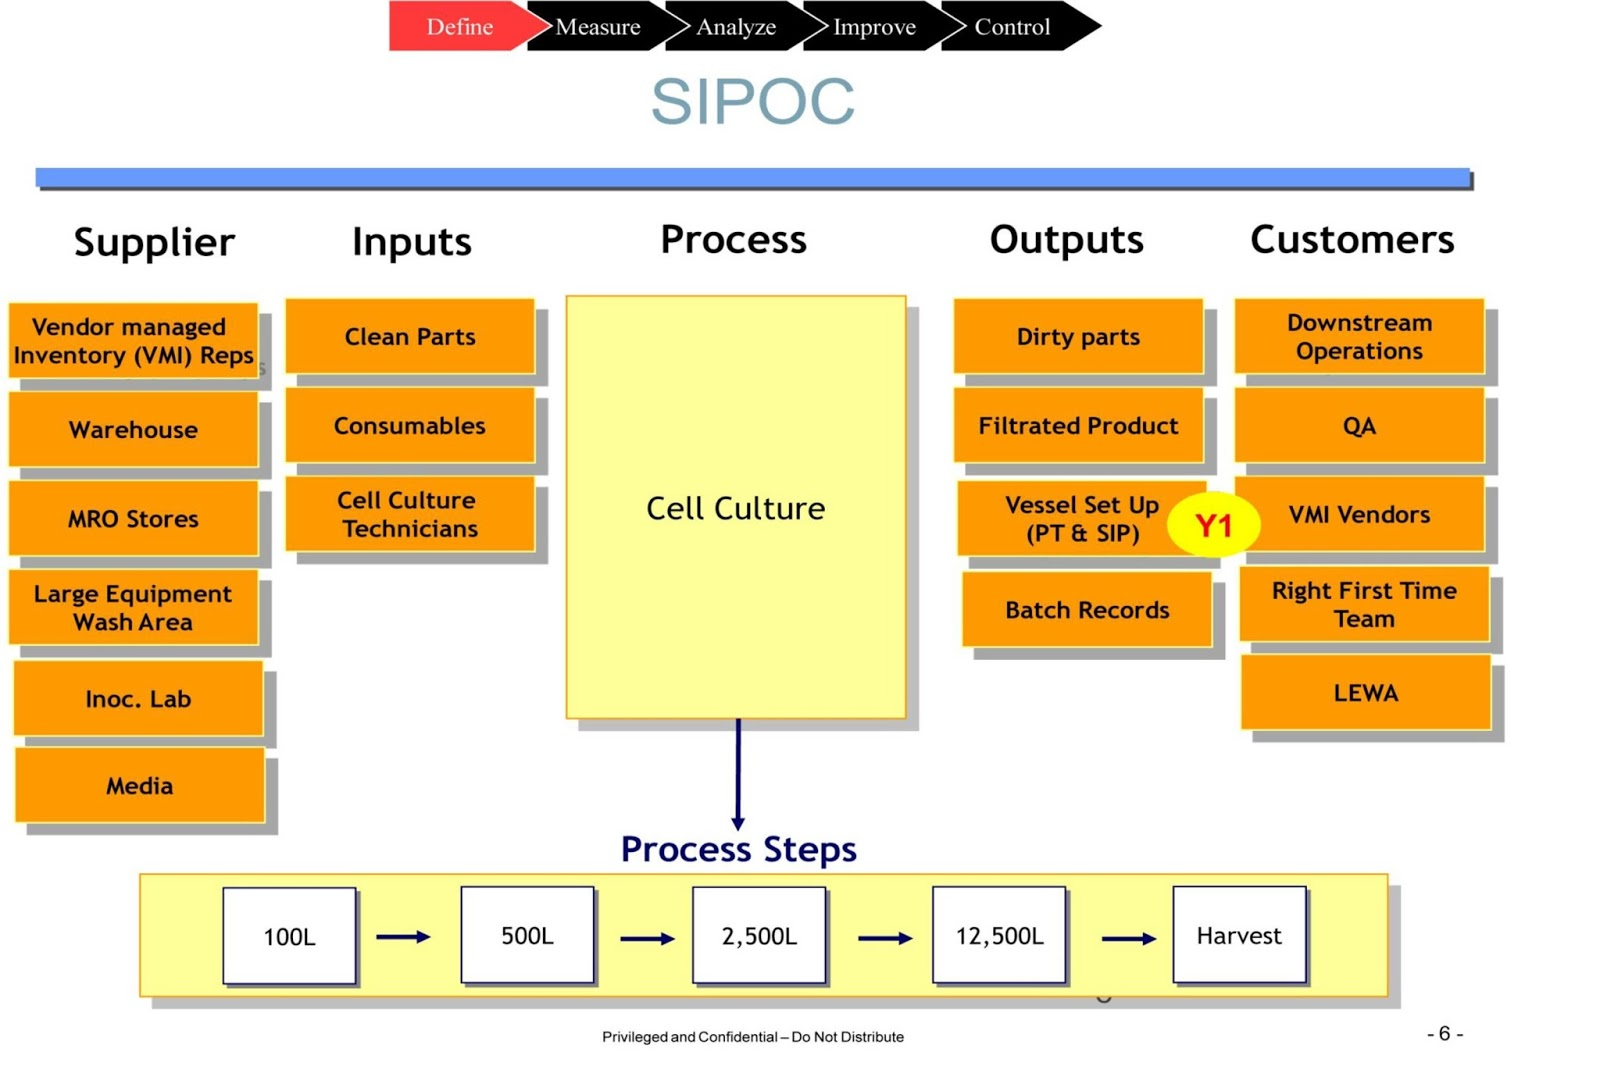 Lean Project: The Introduction of 5S into Cell Culture